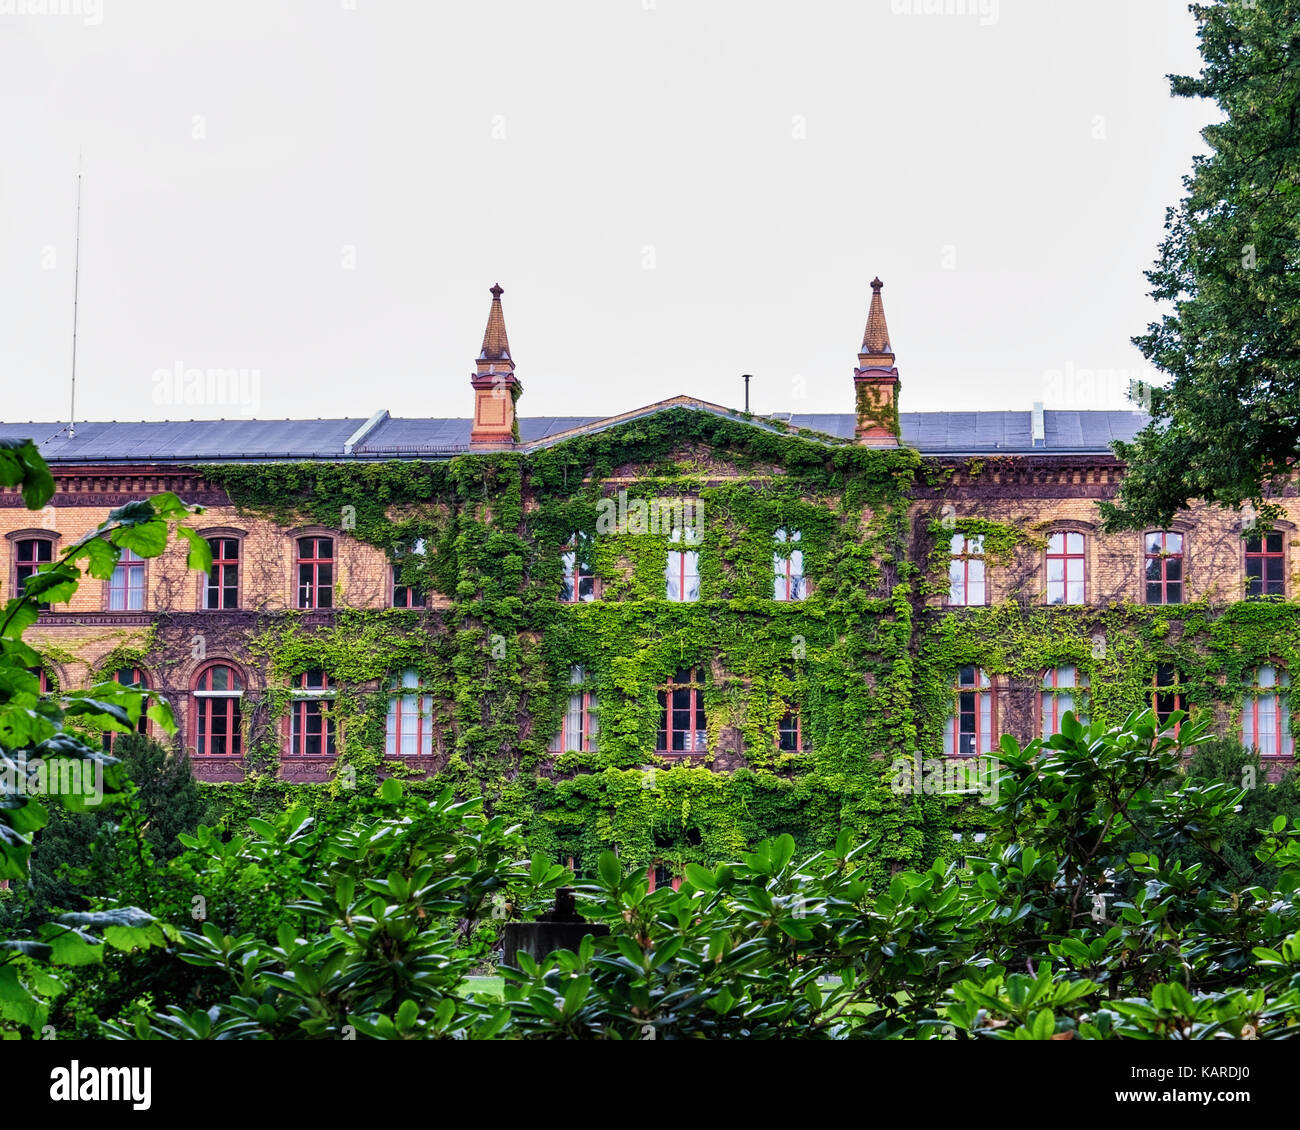 Berlin, Wittenau. Karl-Bonhoeffer-Nervenklinik mental hospital, Psychiatric clinic building No.10 houses a museum - Stock Image